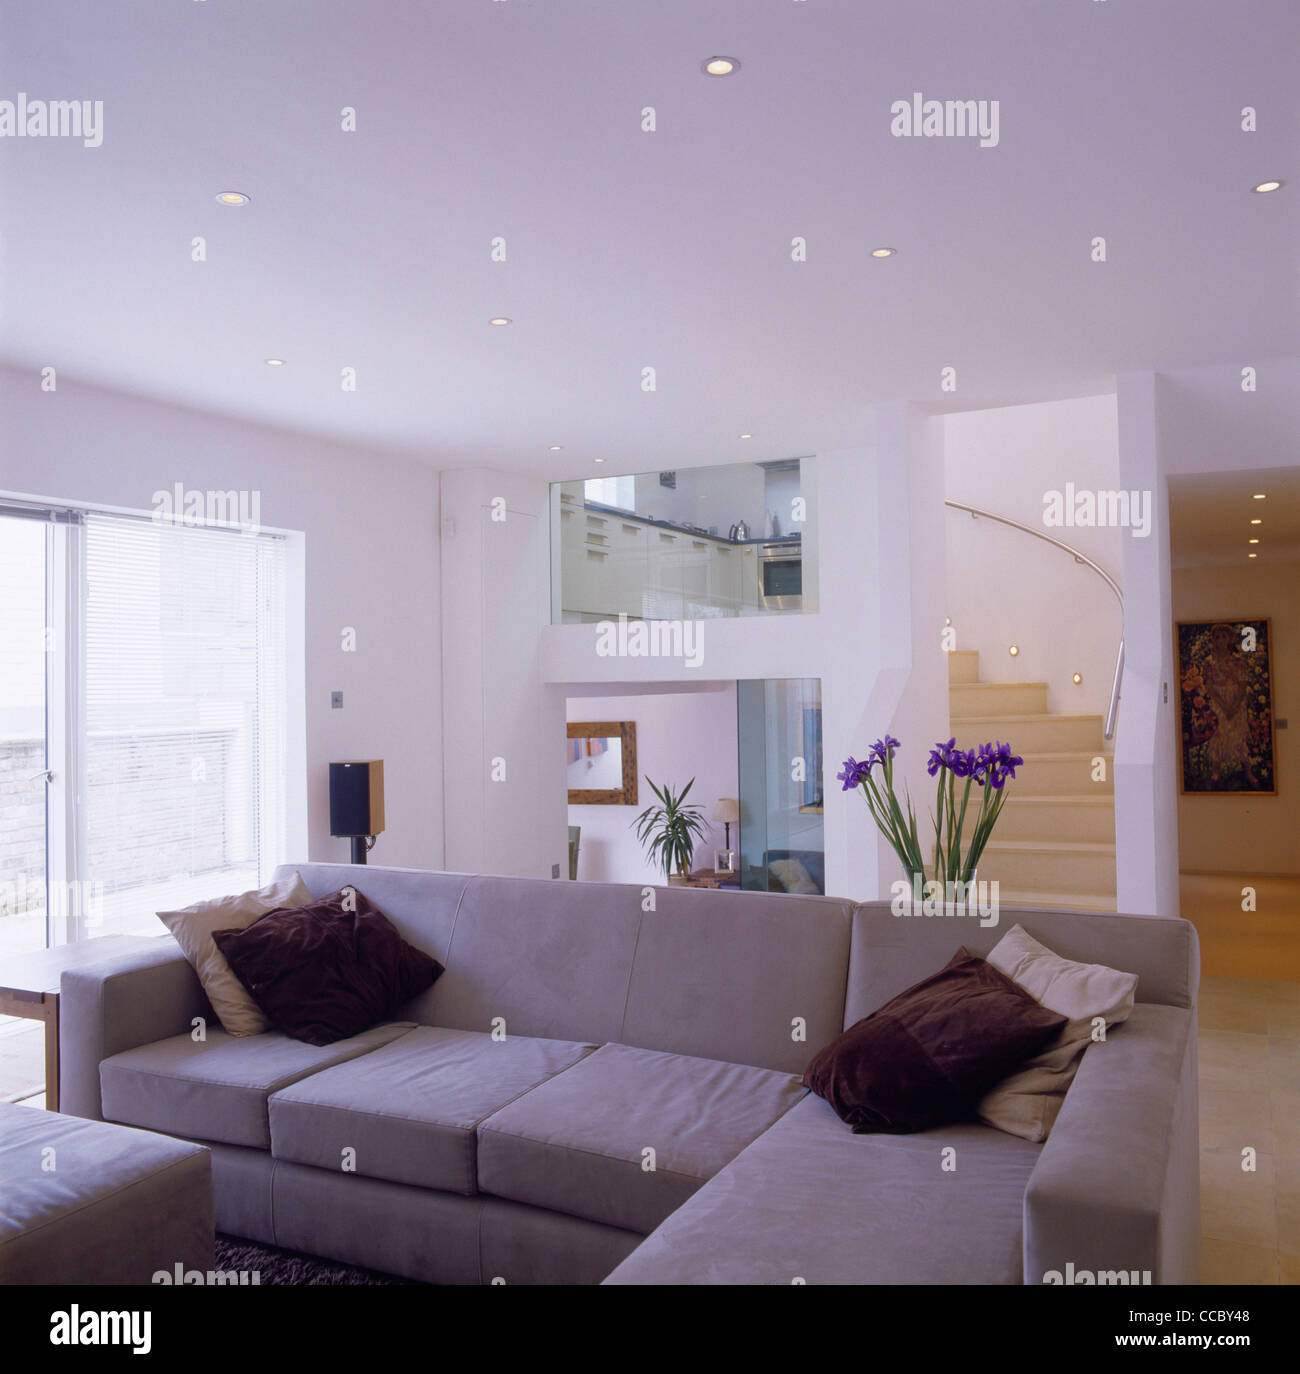 PRIVATE HOUSE LIVING ROOM - Stock Image